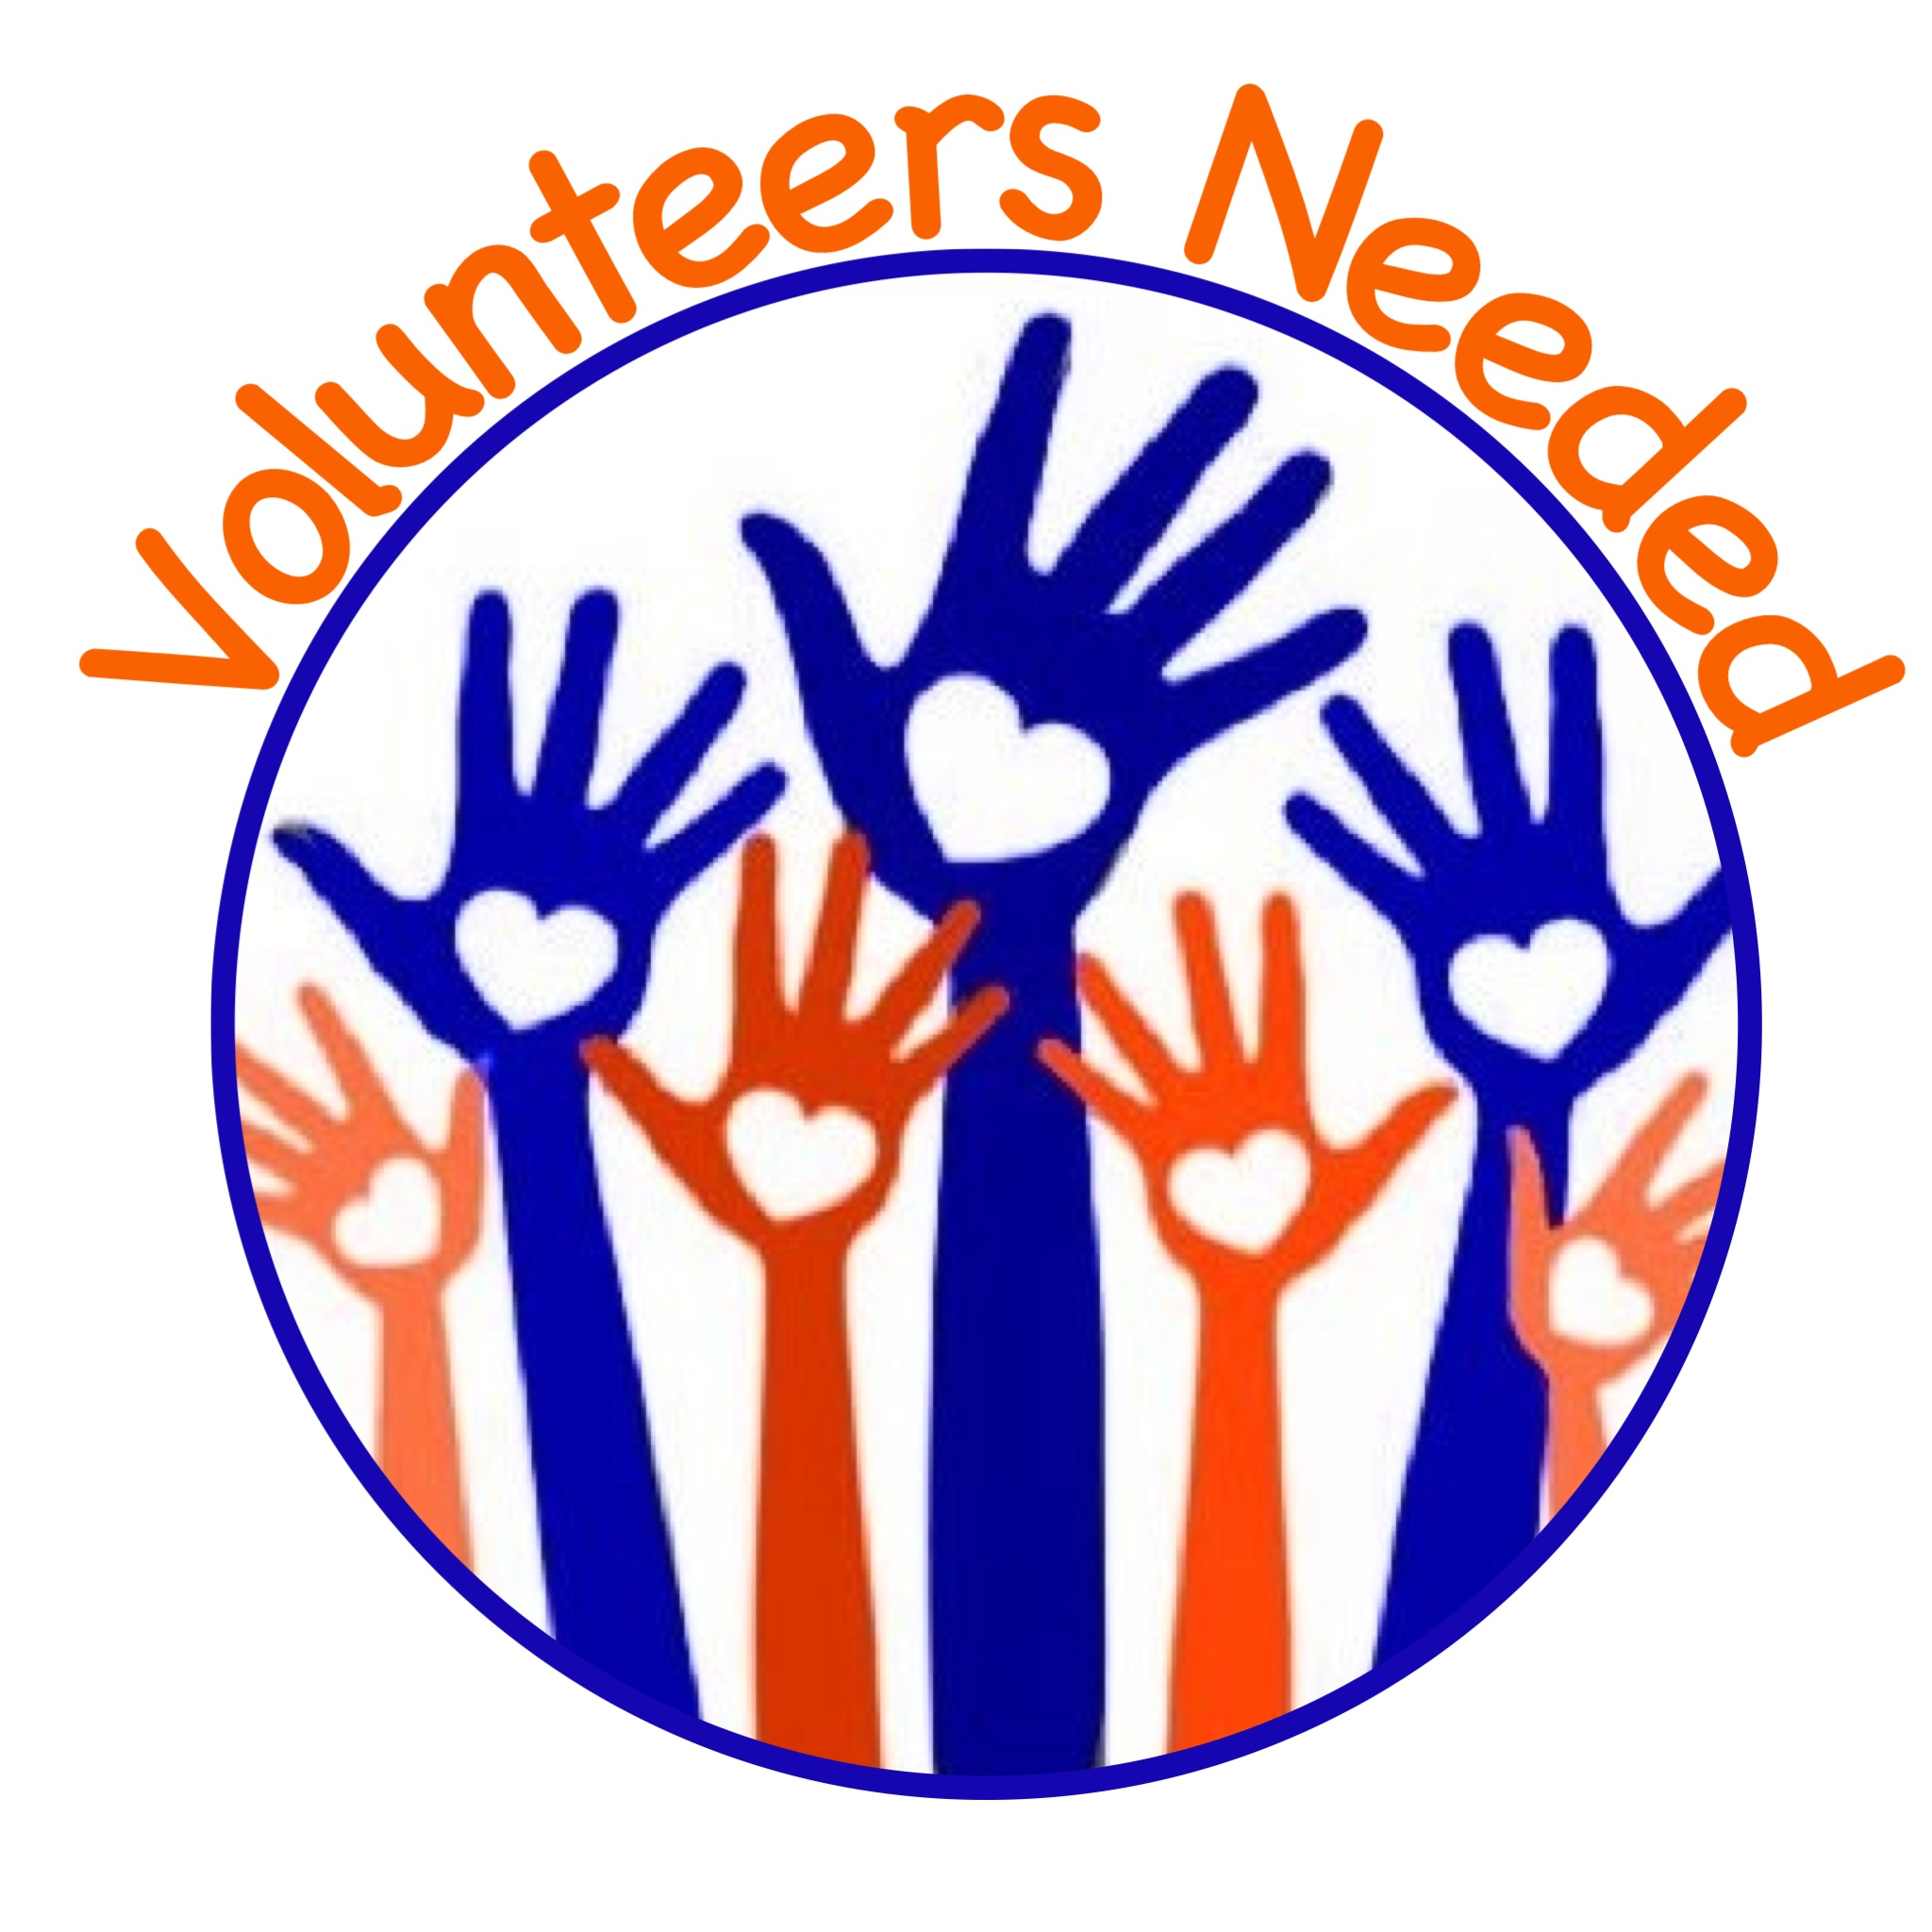 2048x2048 Free Clipart Volunteers Needed